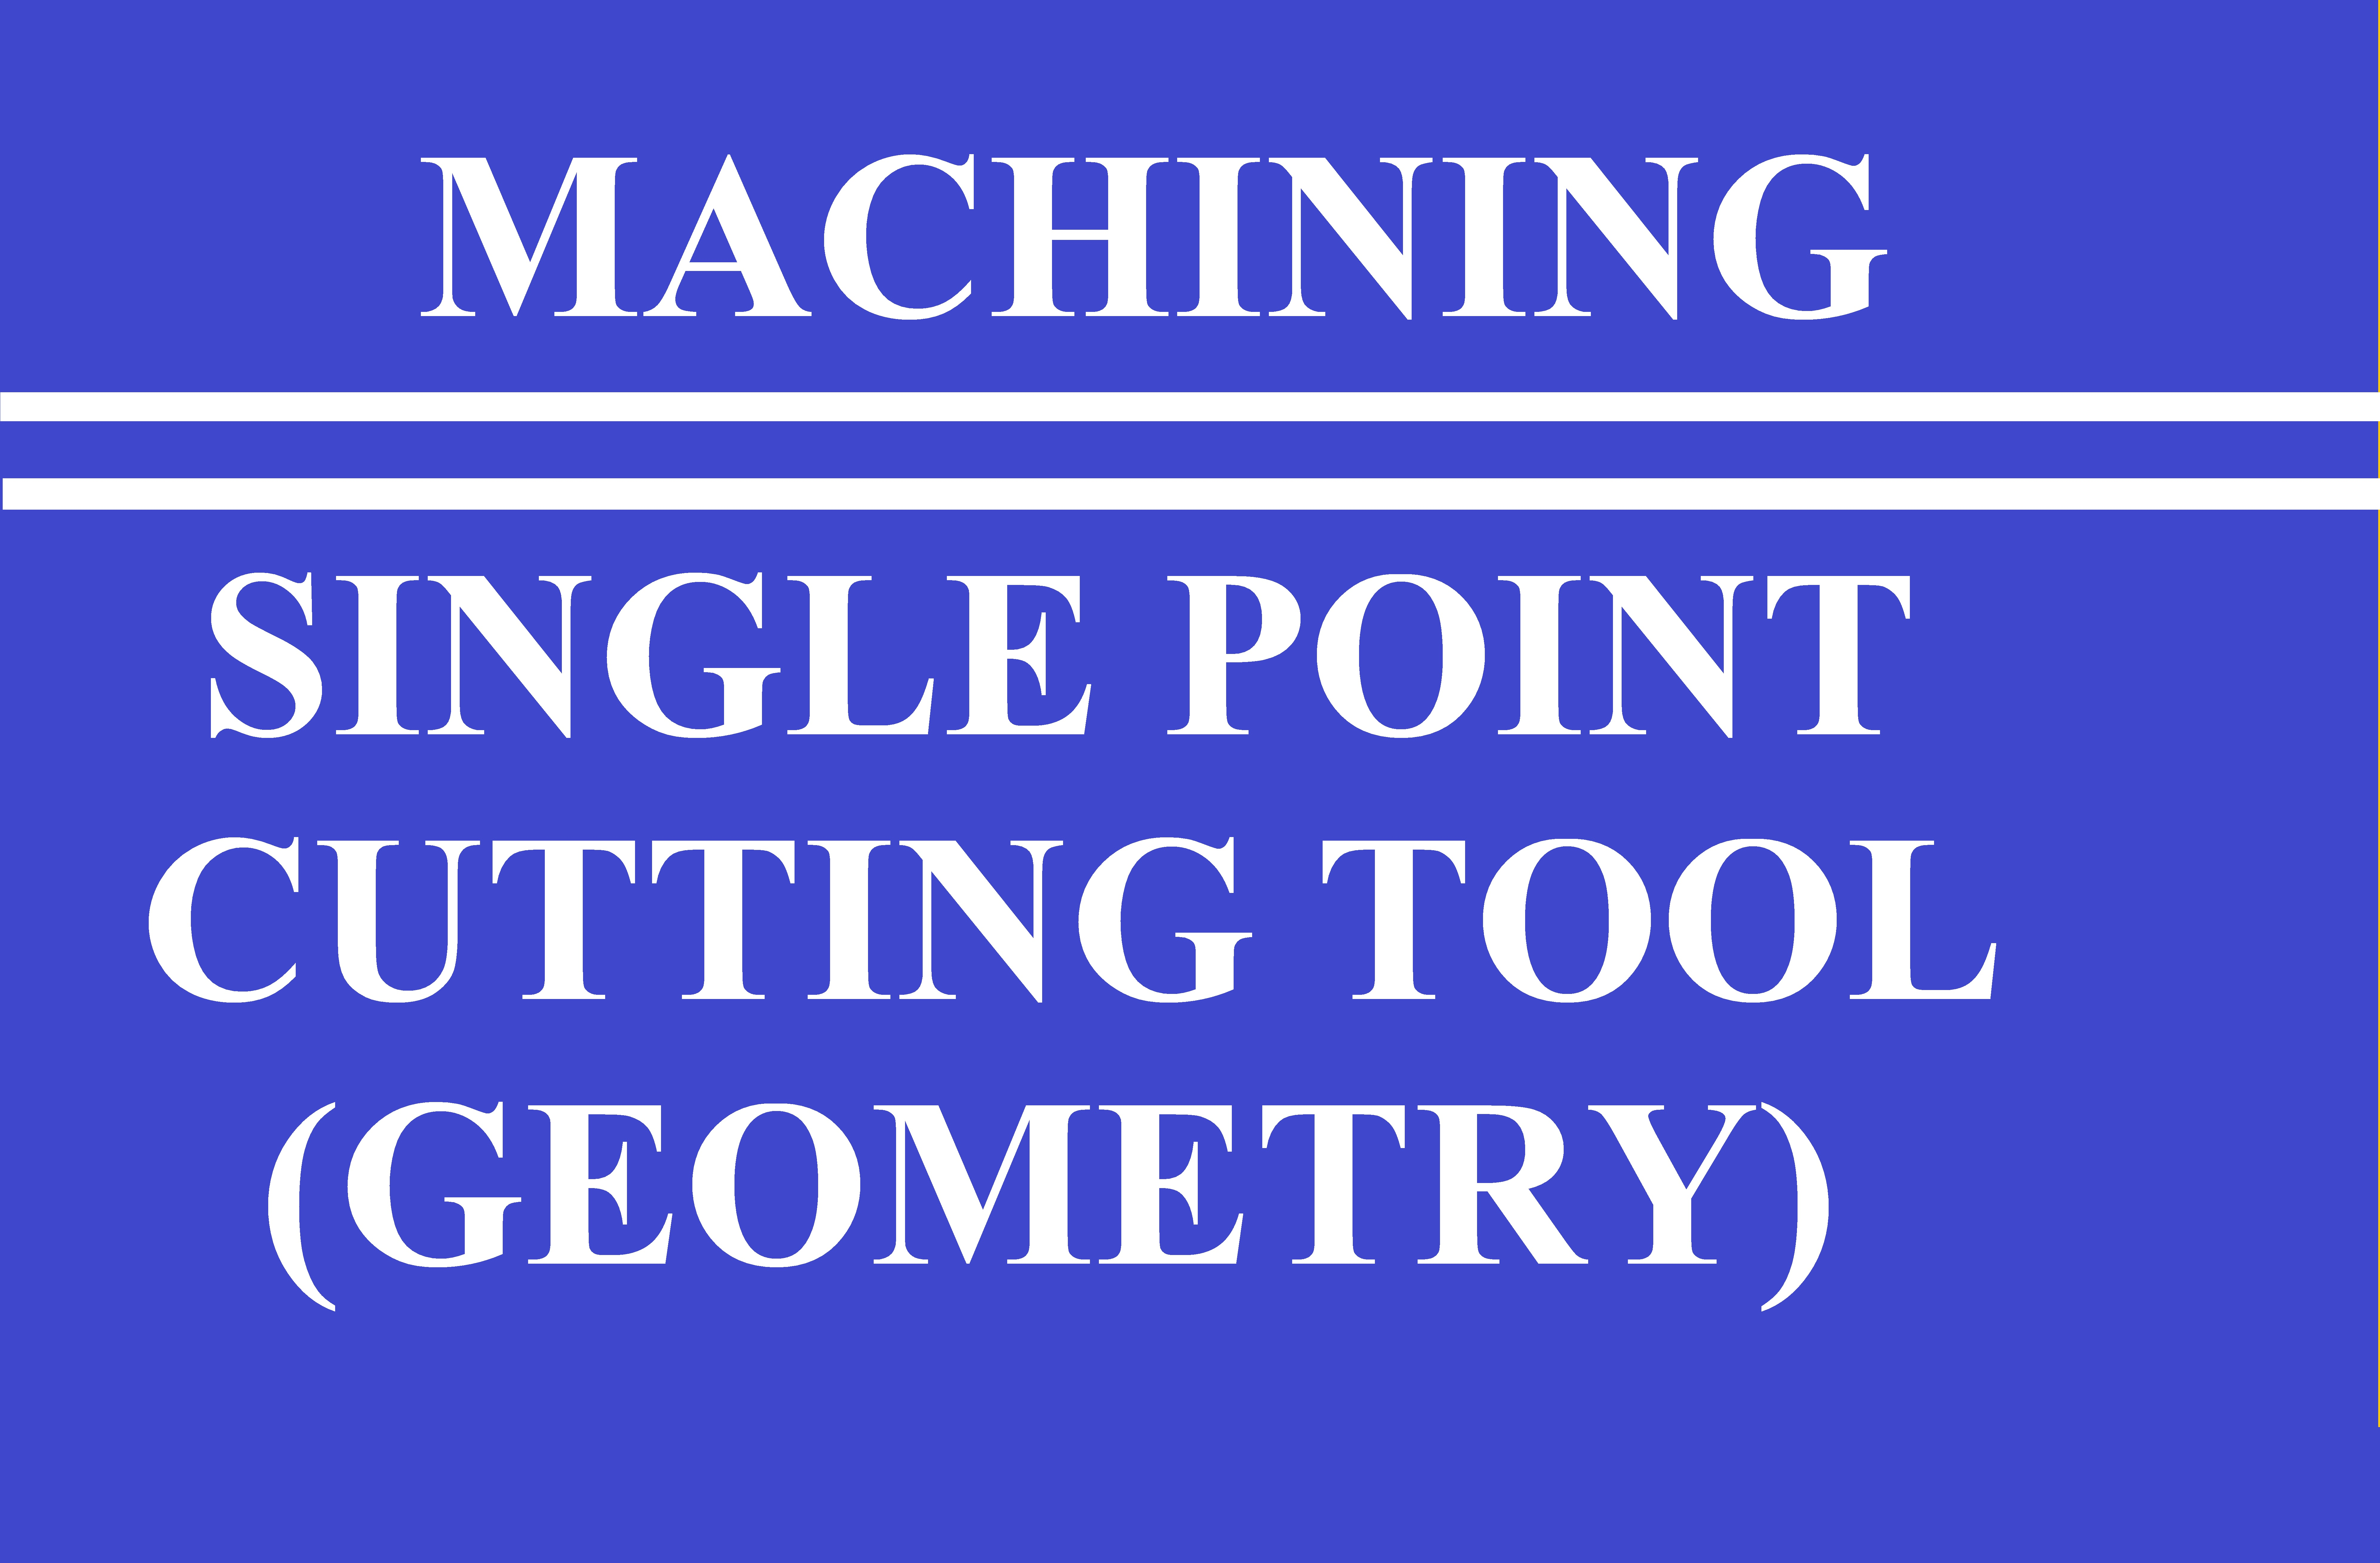 Lec 2 Single point Cutting Tool (Geometry and Terminology)